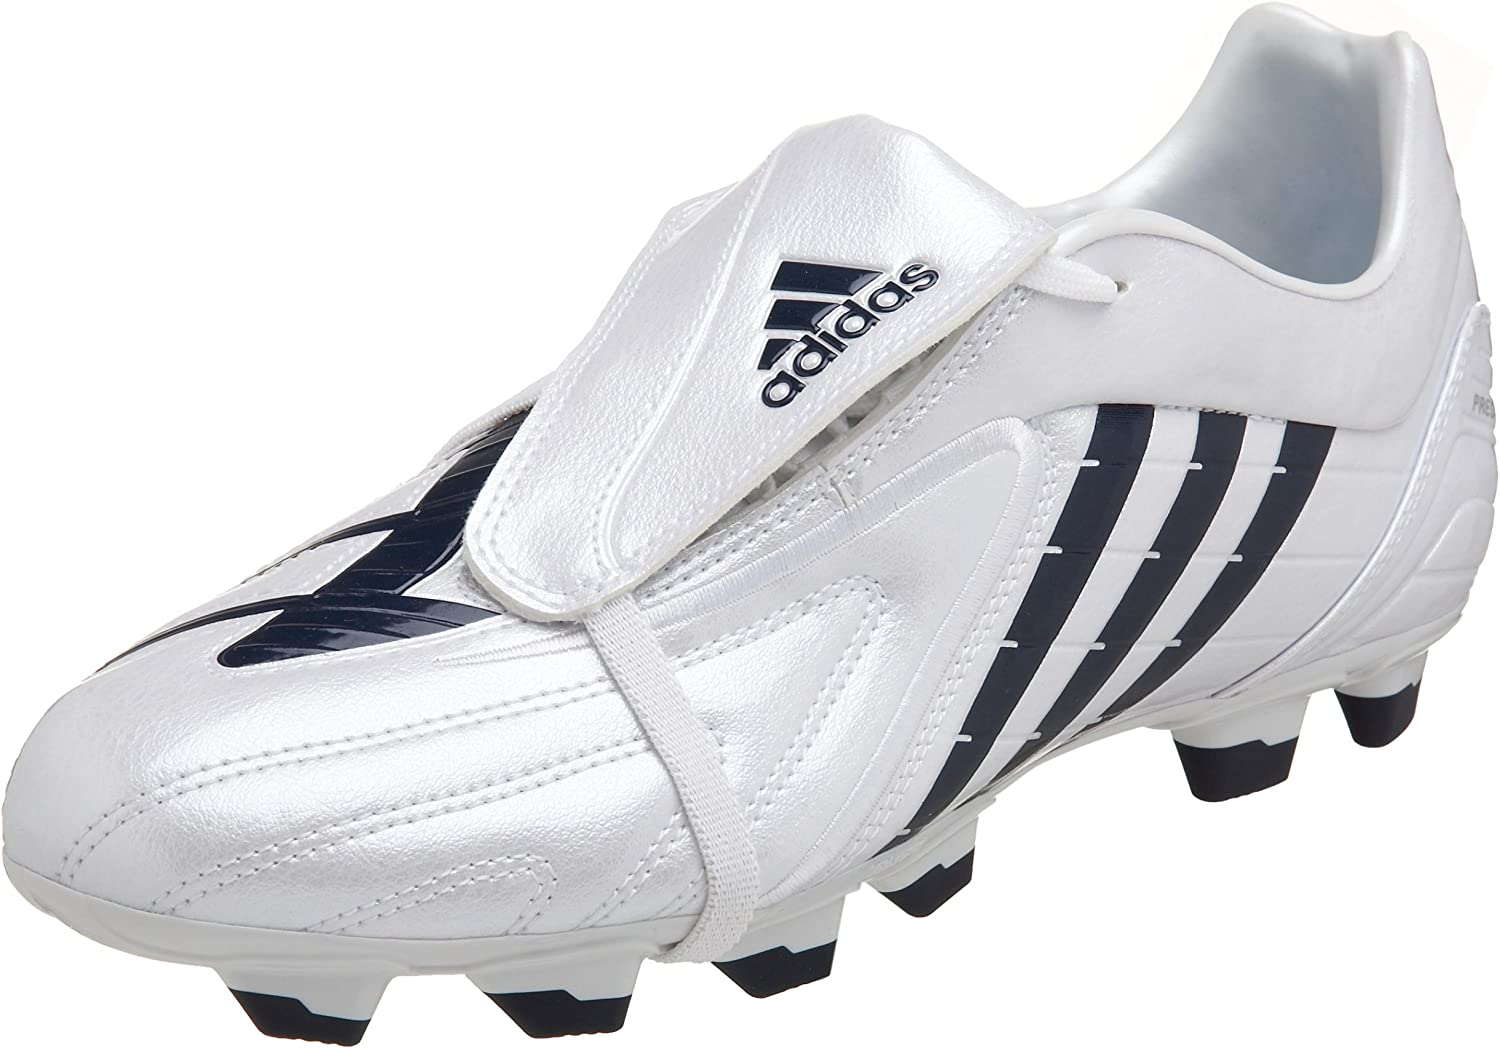 Adidas Men's Absolado PS DB TRX Firm Ground Soccer Cleat